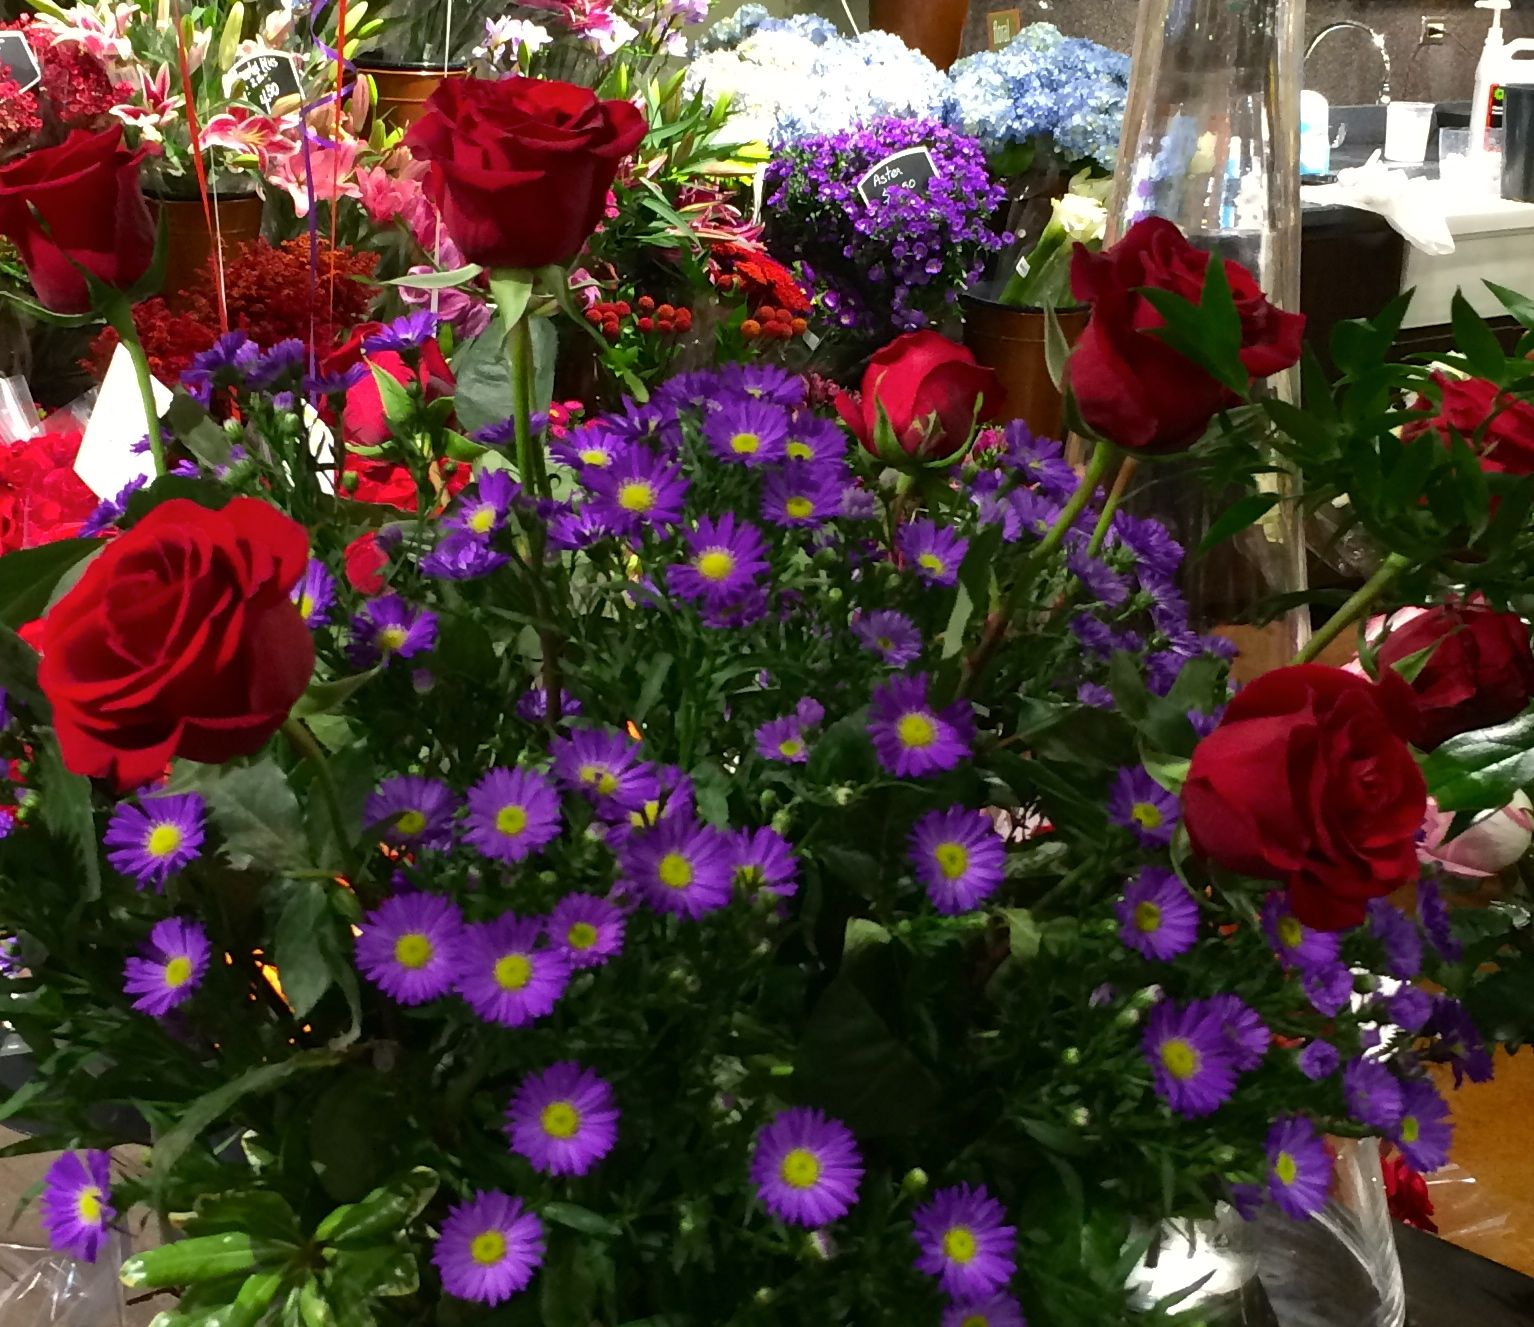 Beautiful arrangement with great texture and color combination #Flowers #Marianos